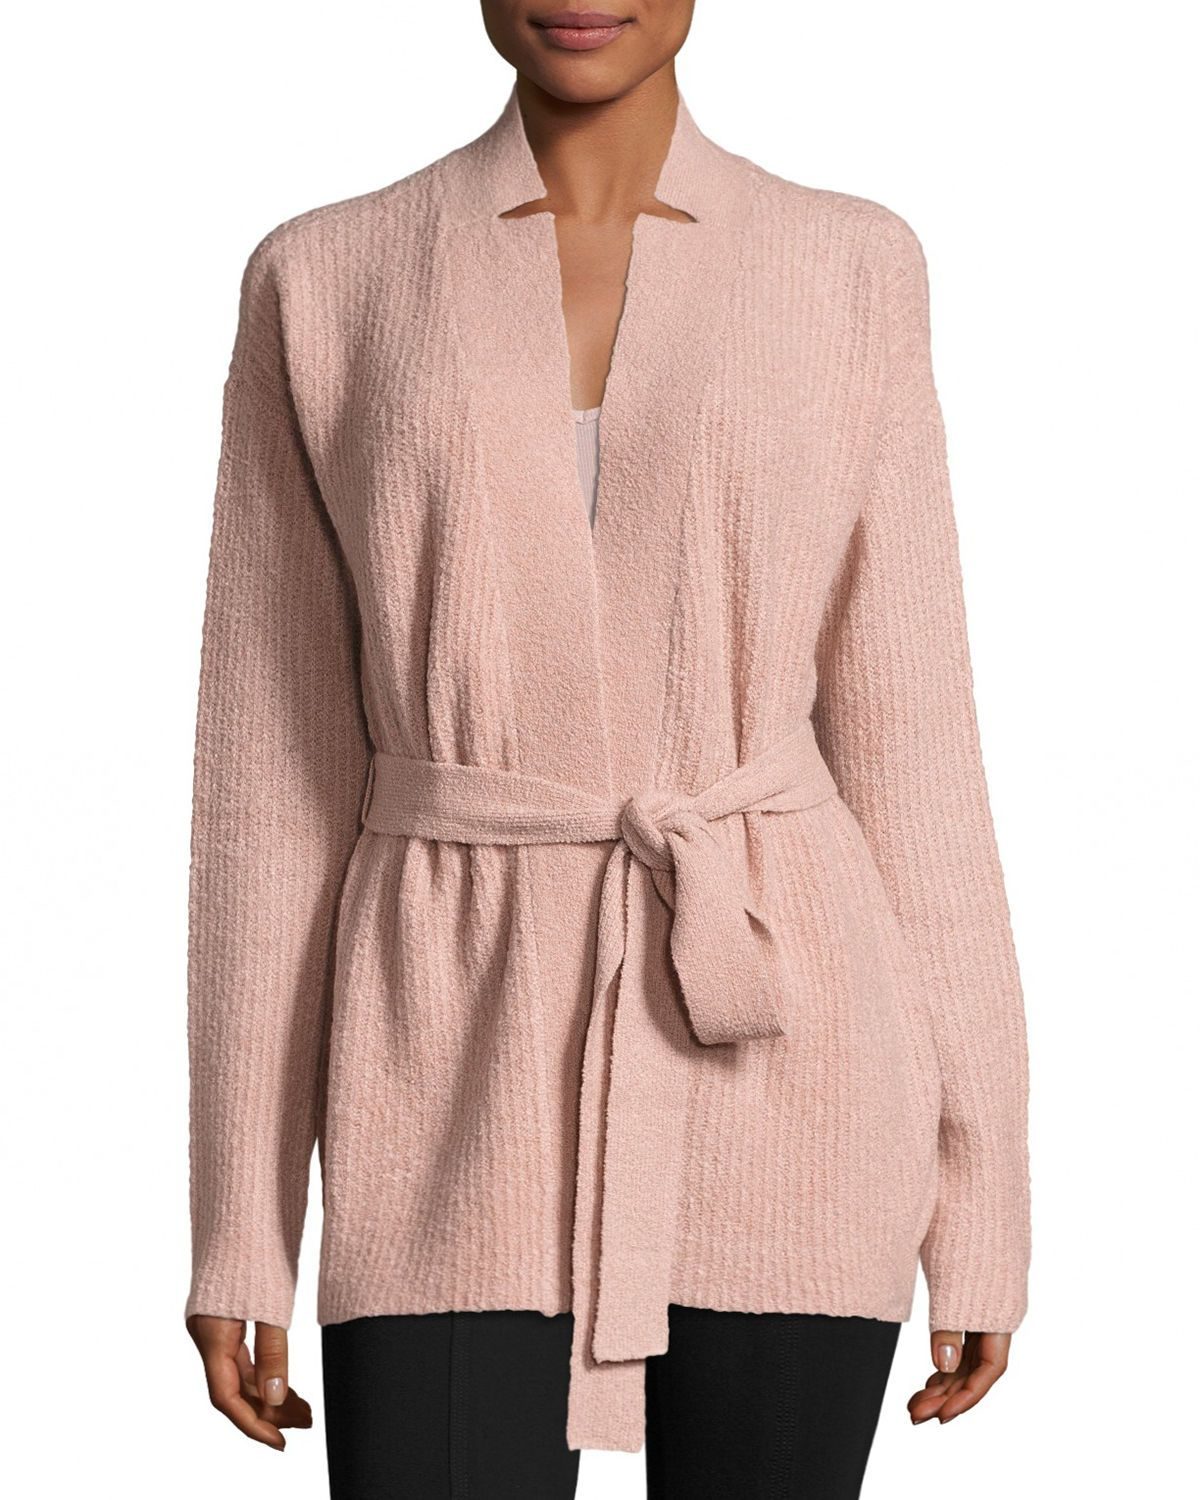 Cashmere Blend Belted Cardigan Sweater   Cardigans, Sweaters and ...